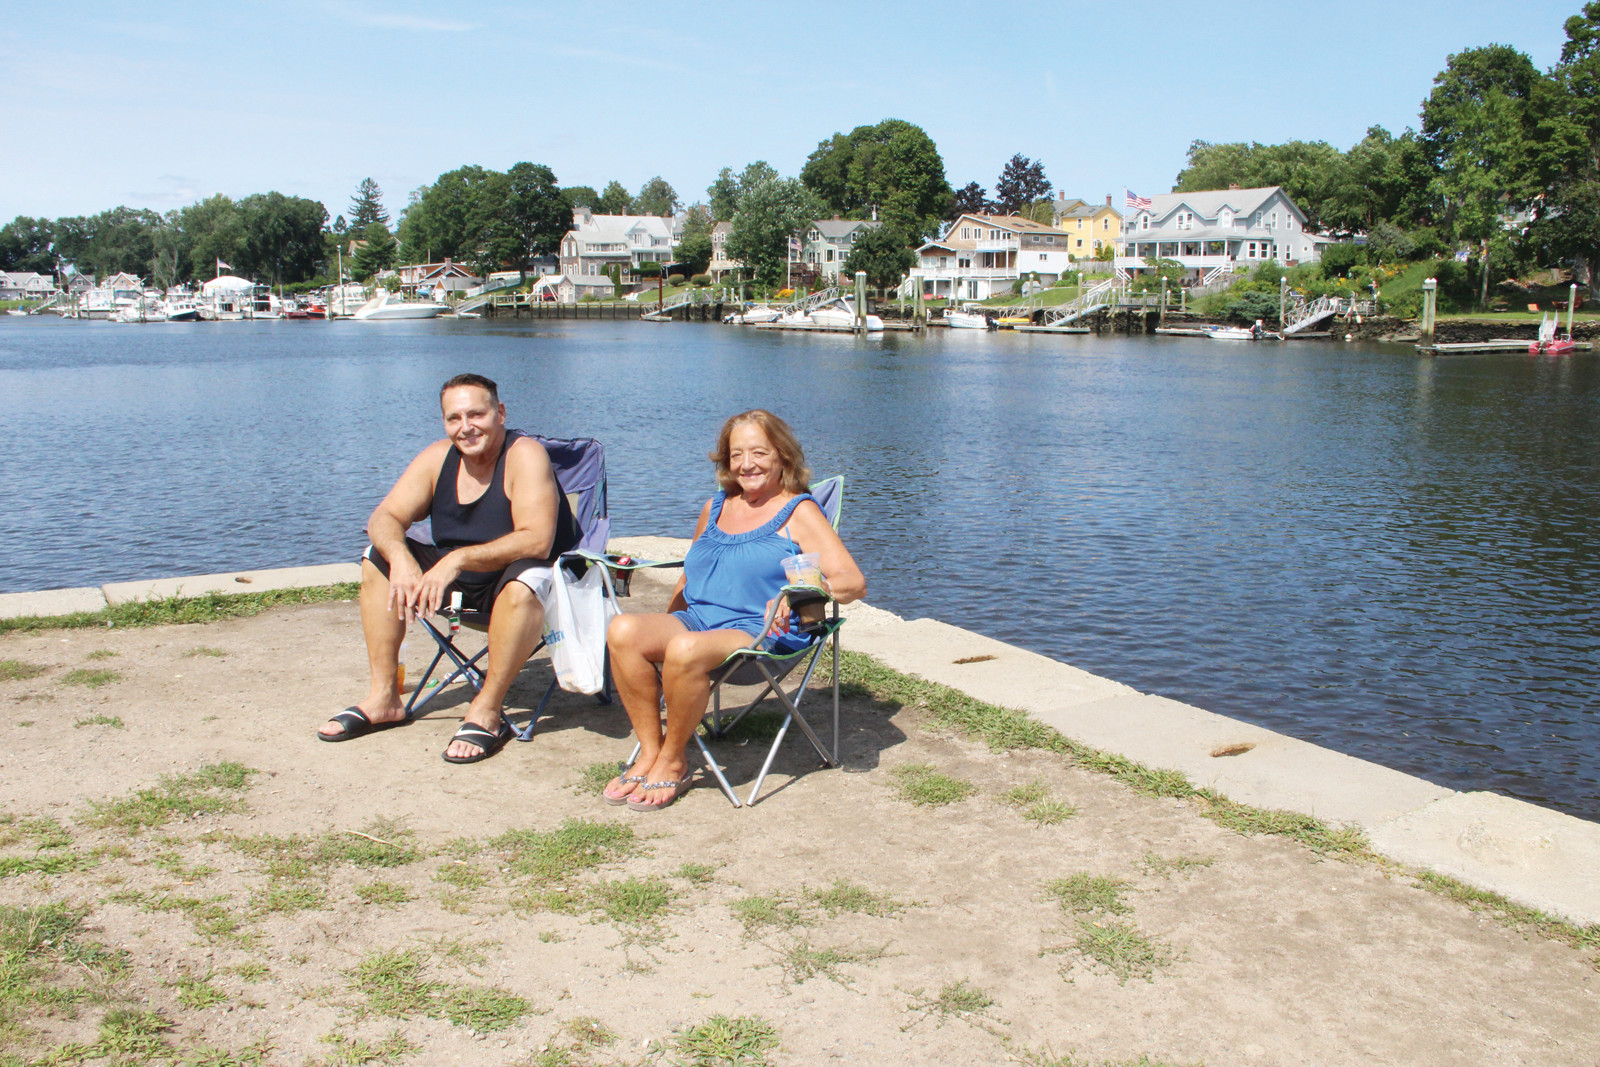 REGULARS: Albert Sionni and Joyce Harris take in the sun from the terrace at the Aspray boathouse. They said they frequently visit the spot.